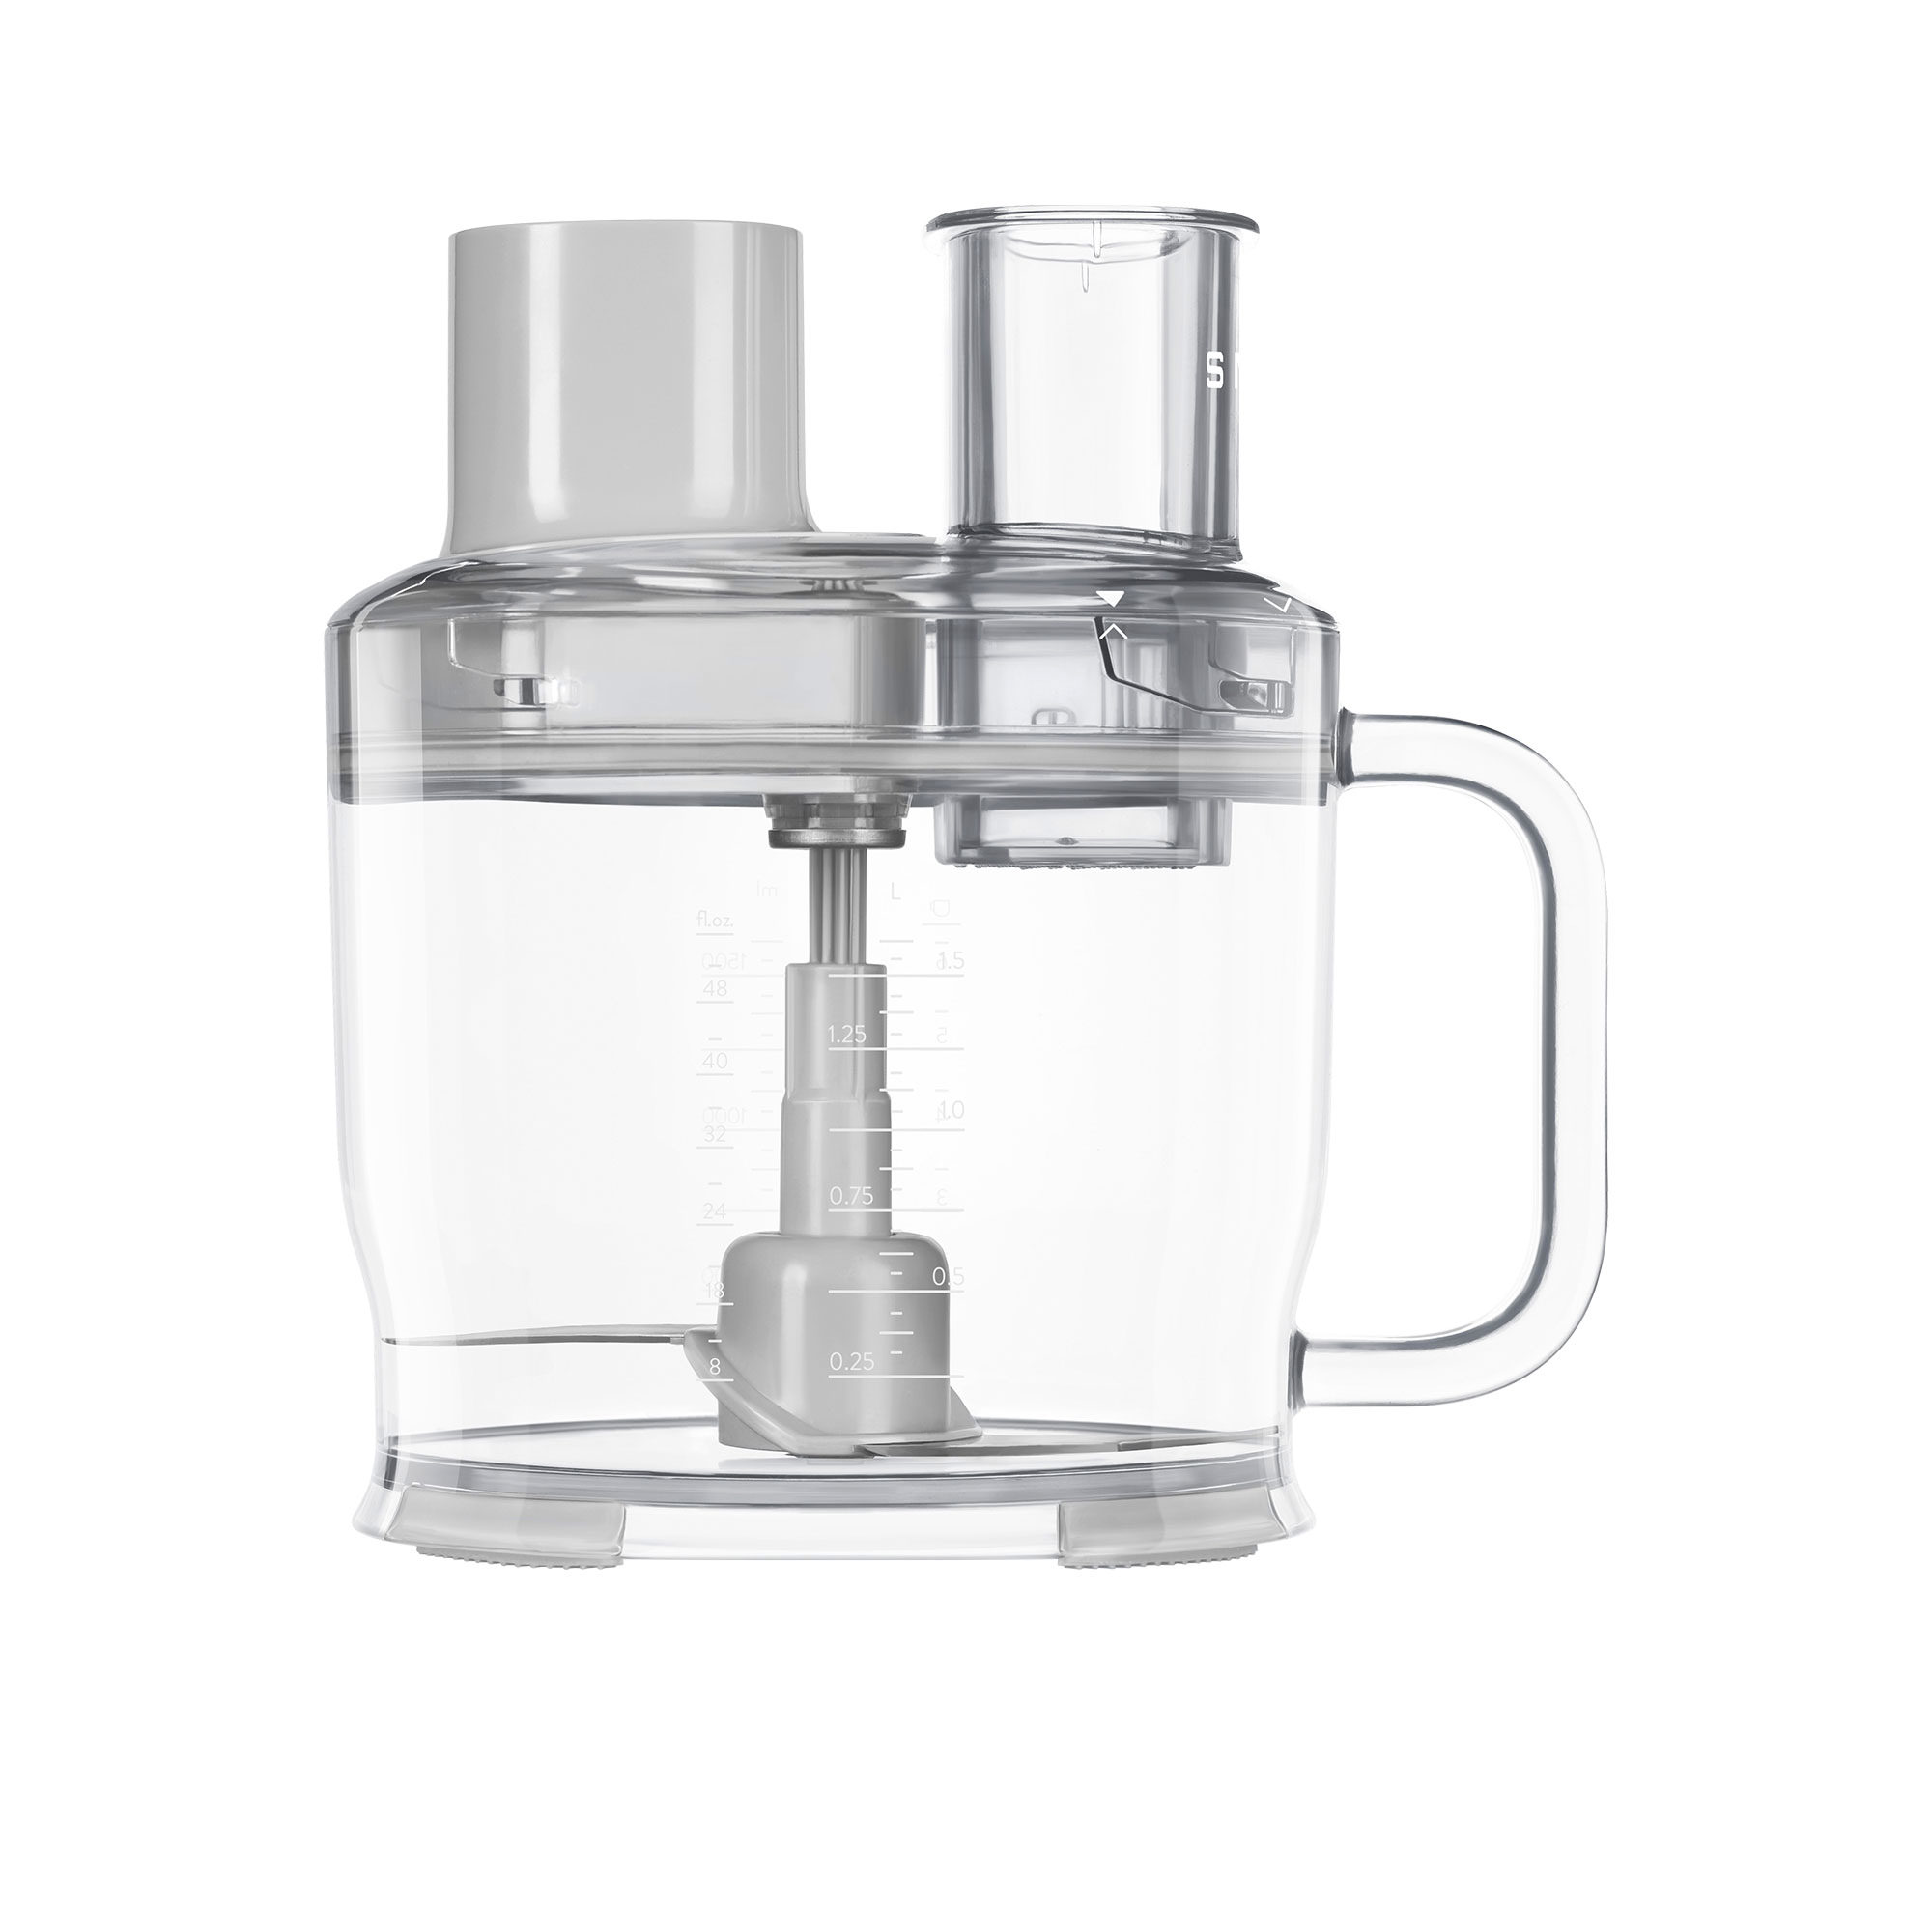 Smeg Food Processor Attachment